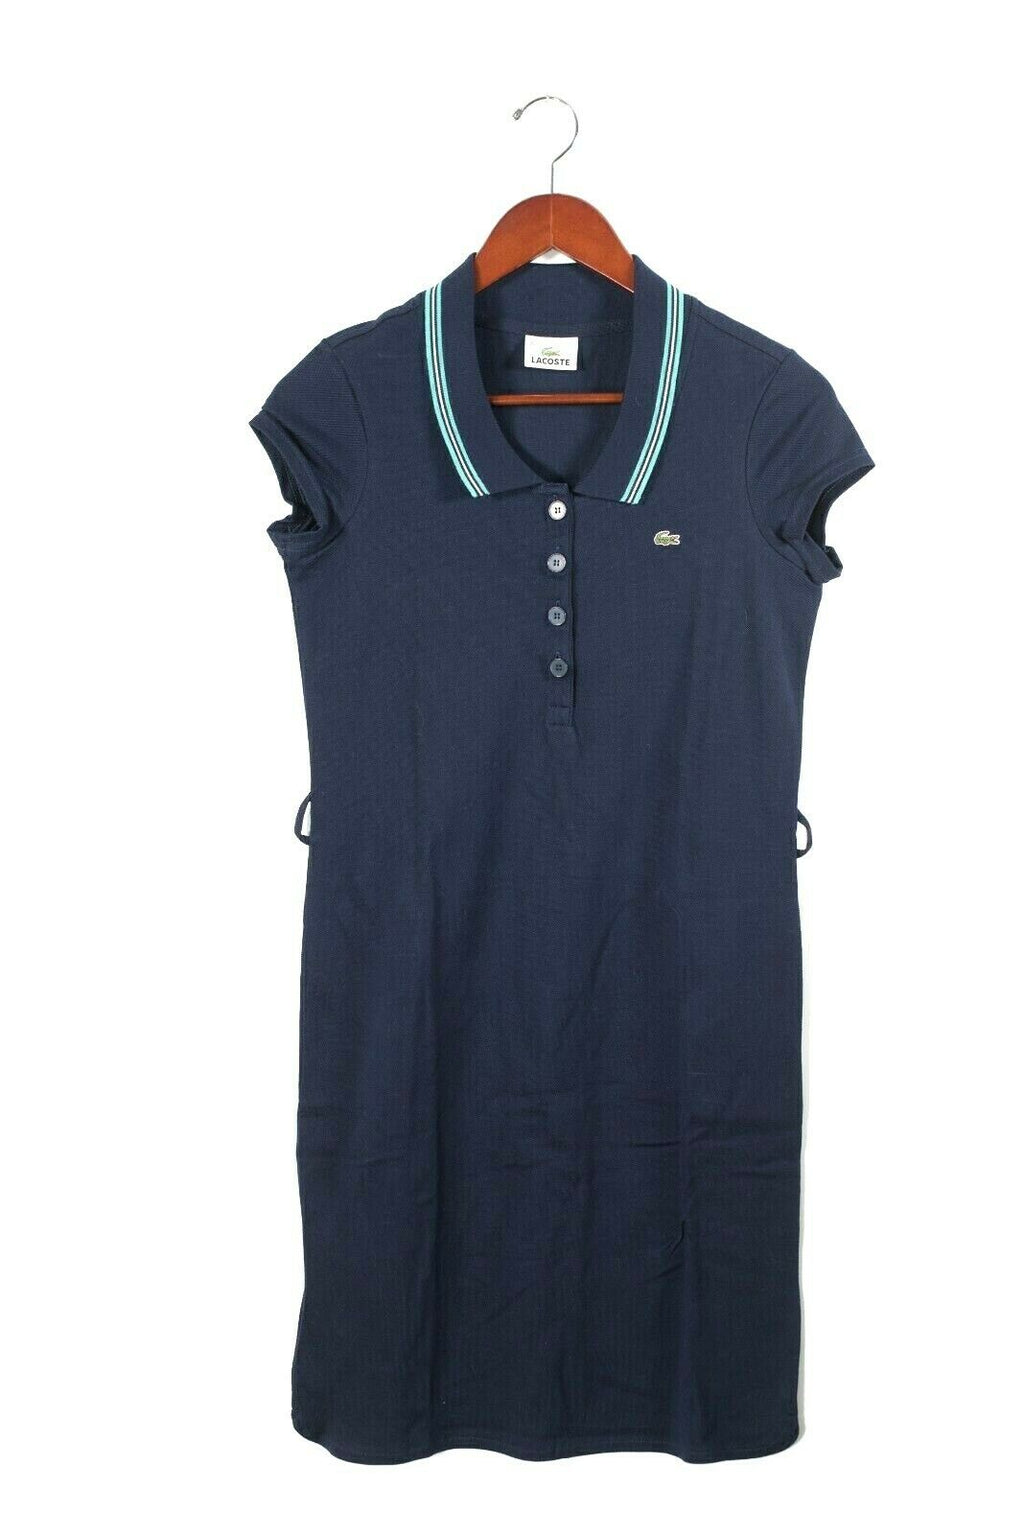 Lacoste Womens 36 XS Navy Blue Slim Fit Stretch Polo Pullover Mini Shirt Dress